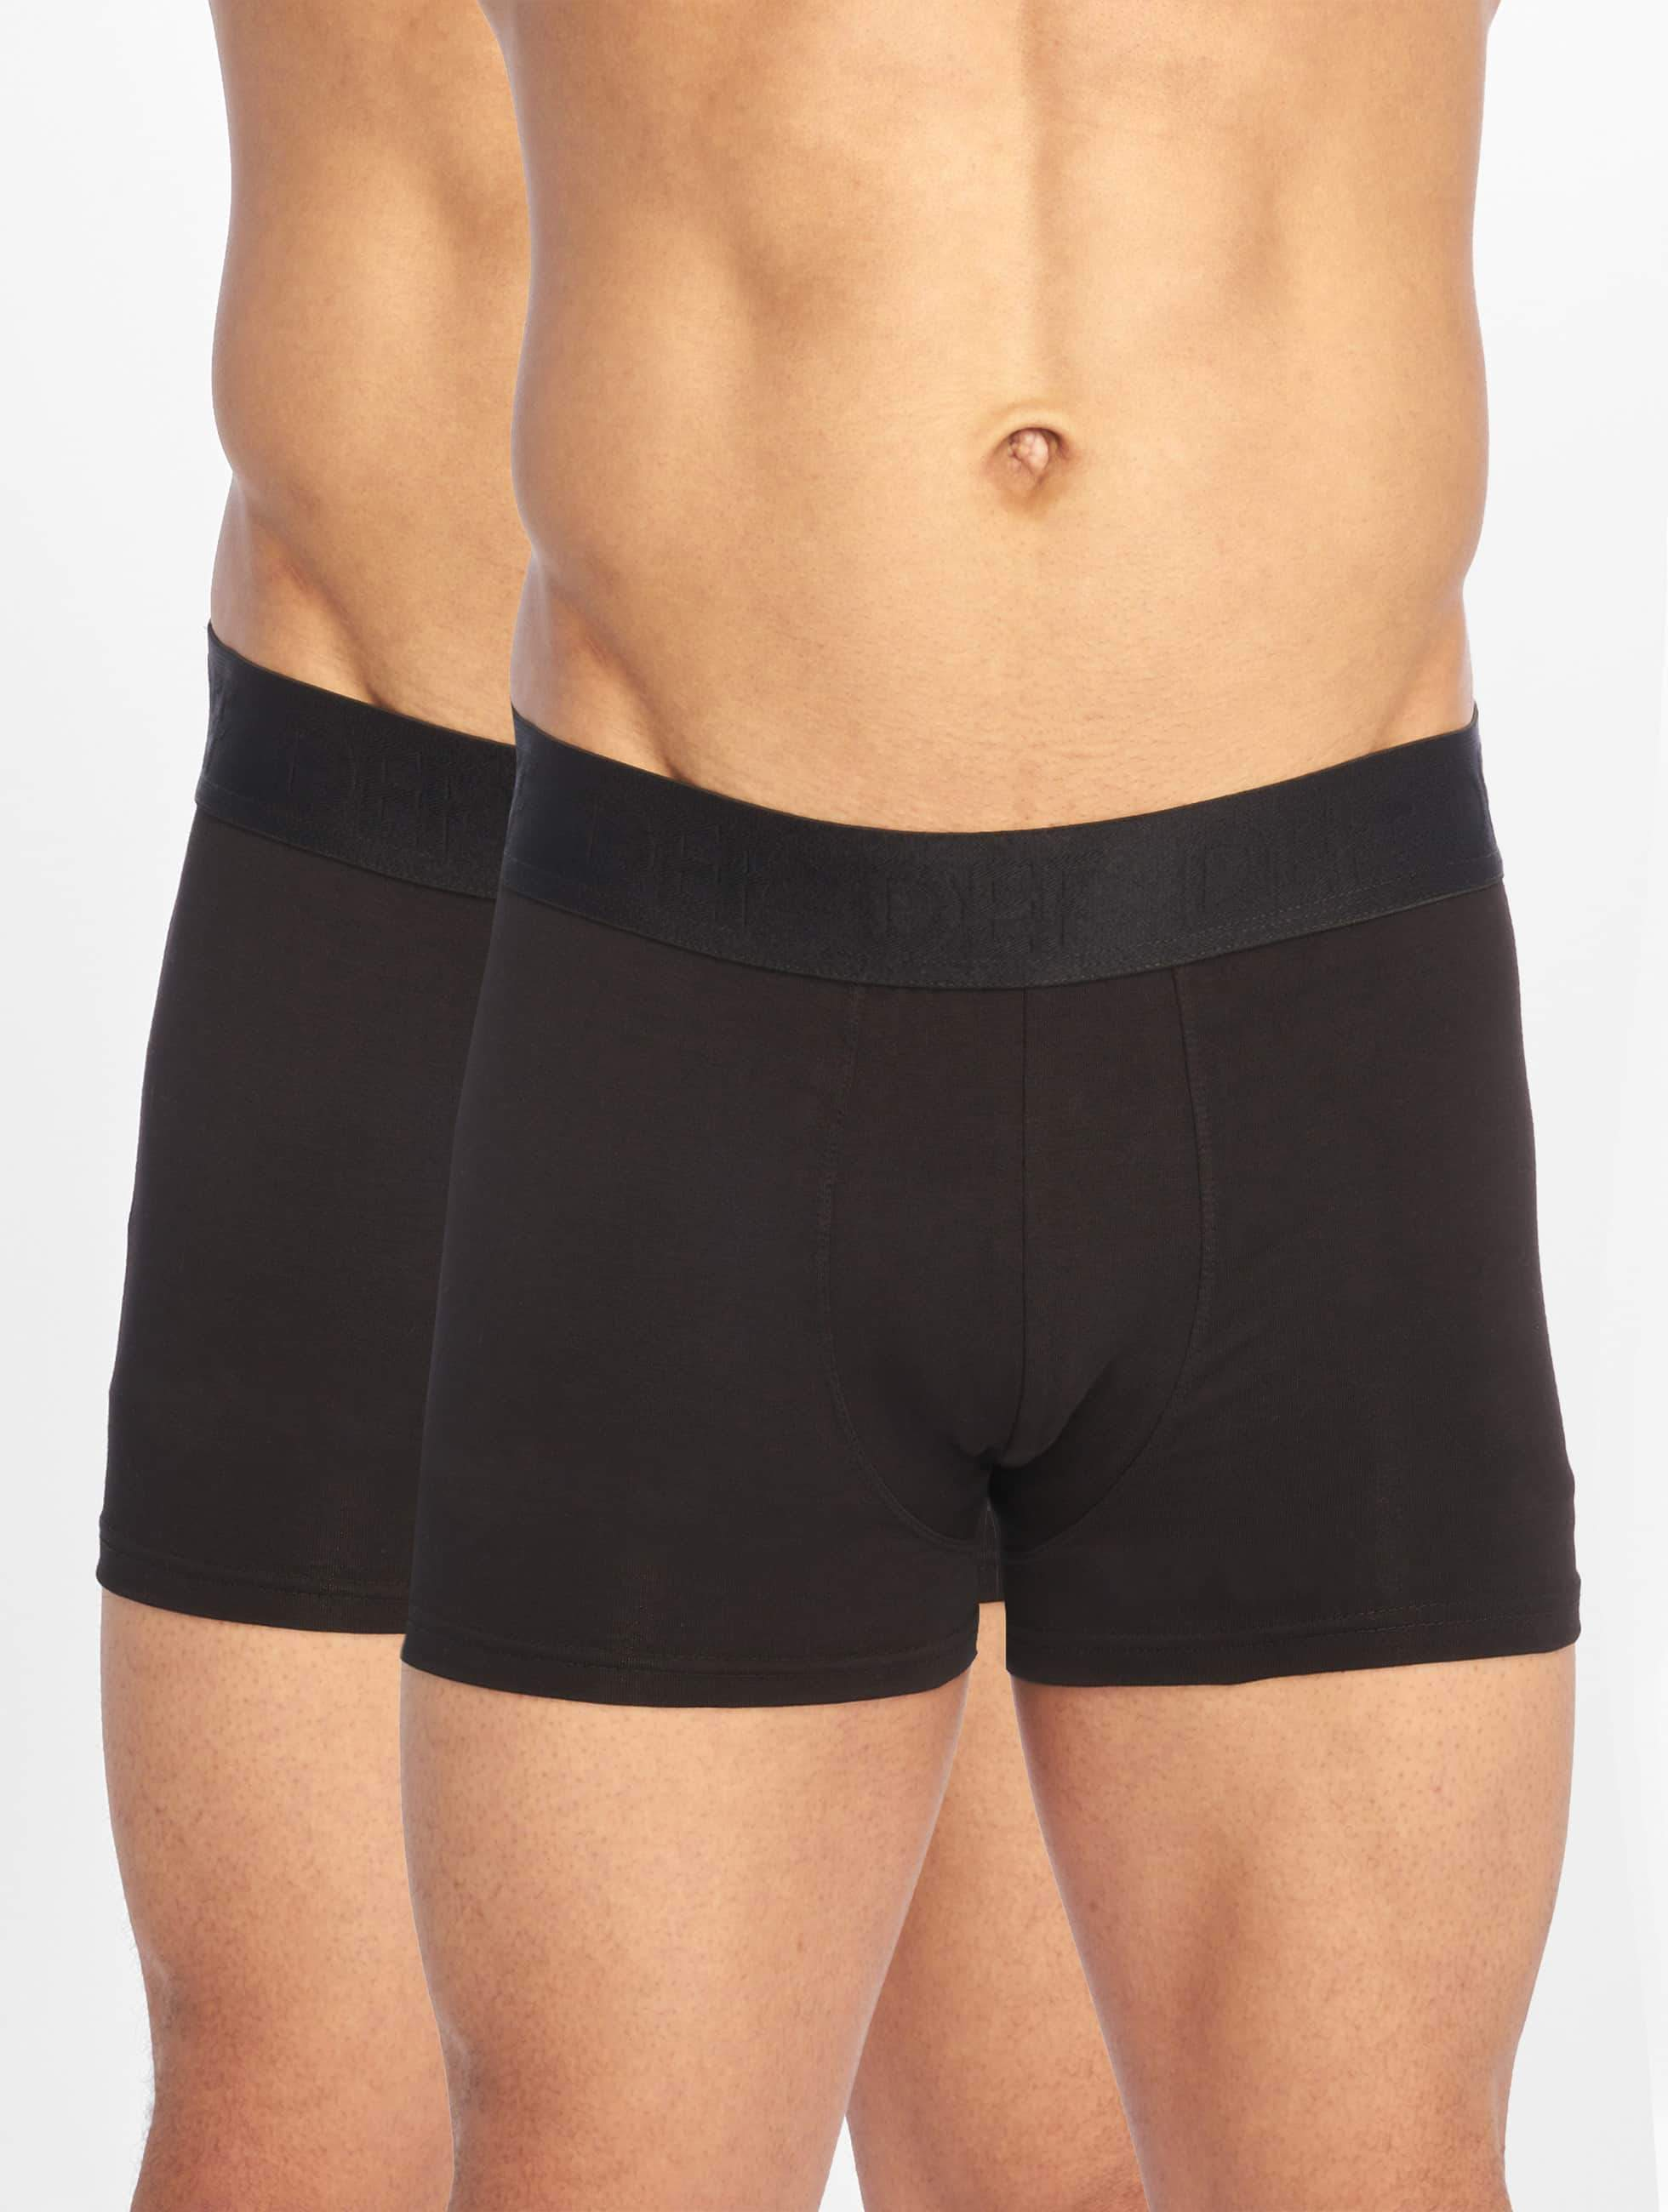 DEF / Boxer Short Double Pack in black S